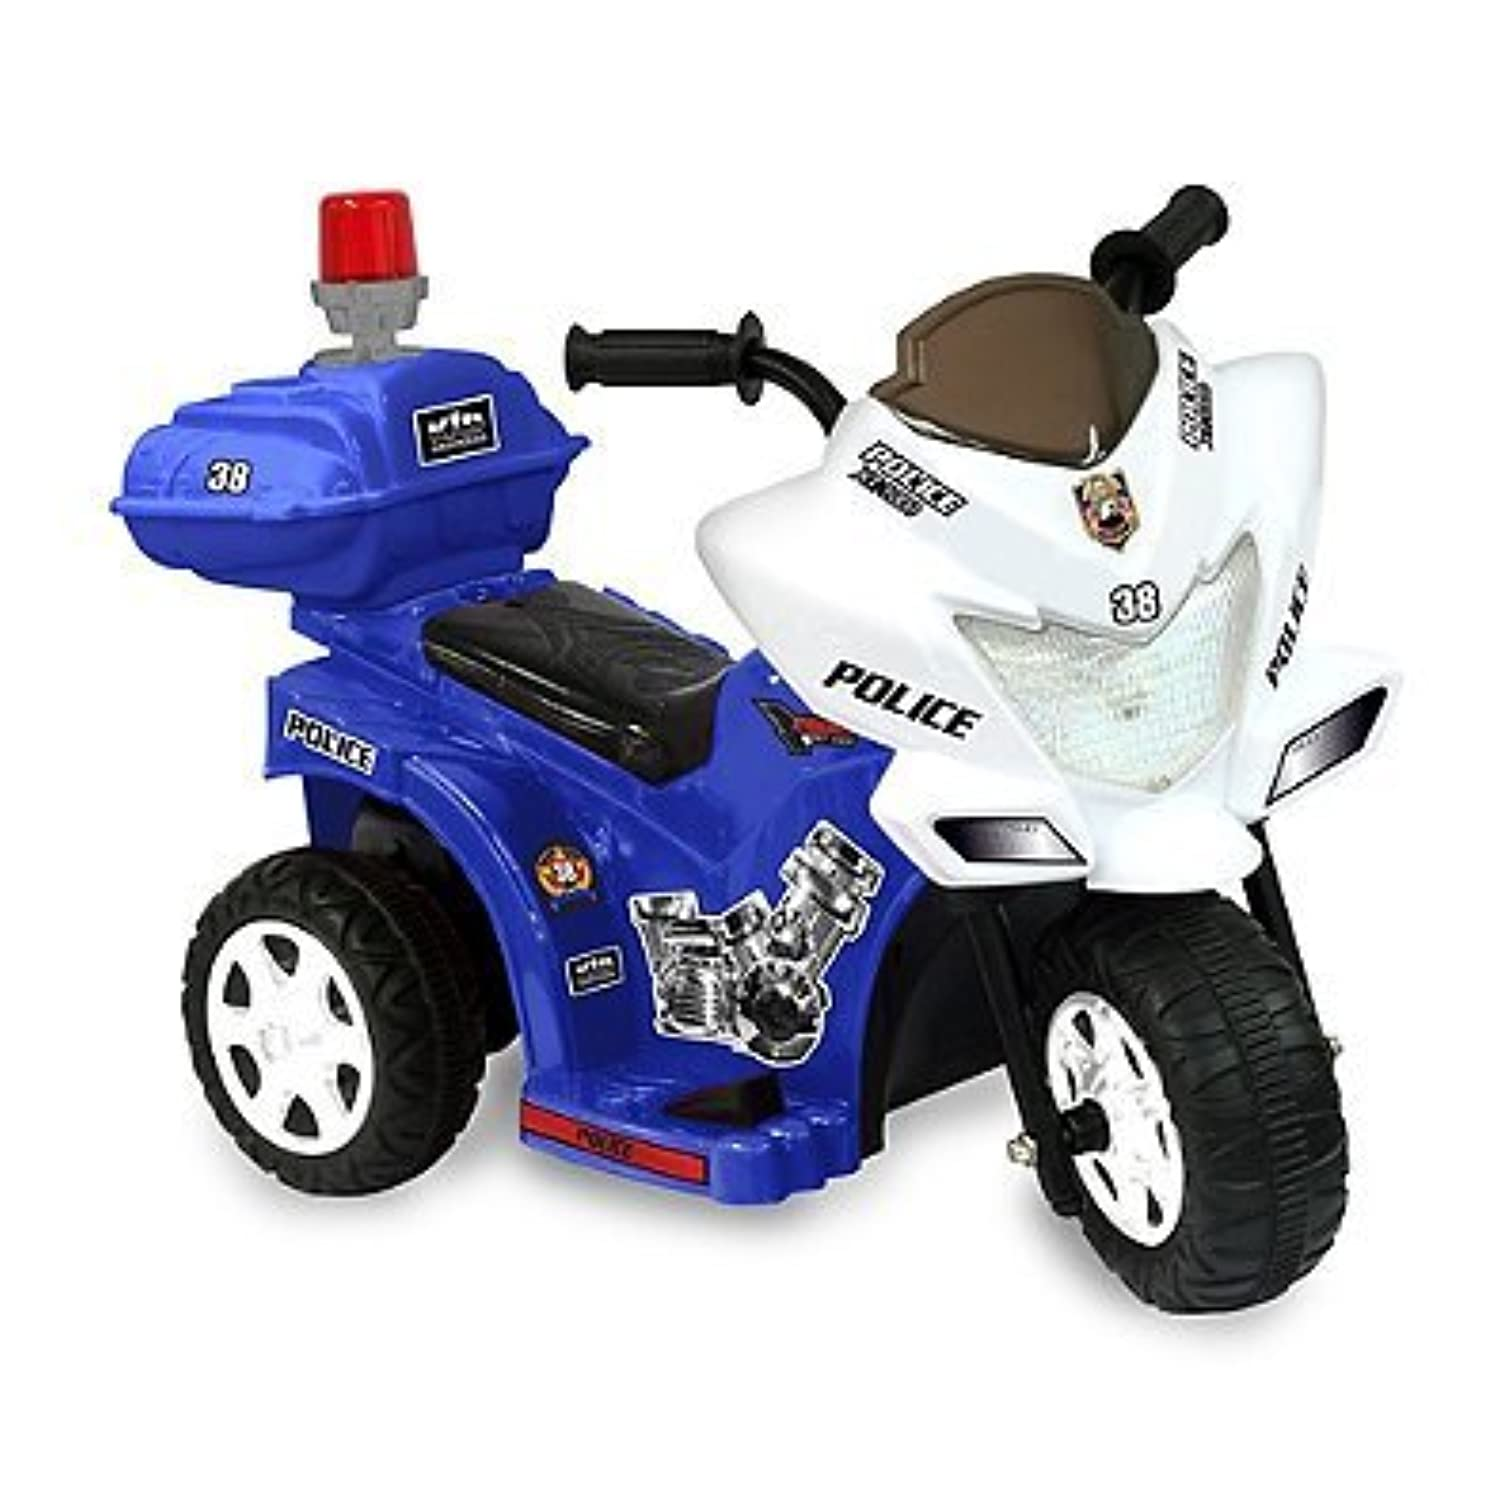 Kid Motorz Lil Patrol 6-volt Motorcycle ride-on inブルー&ホワイト